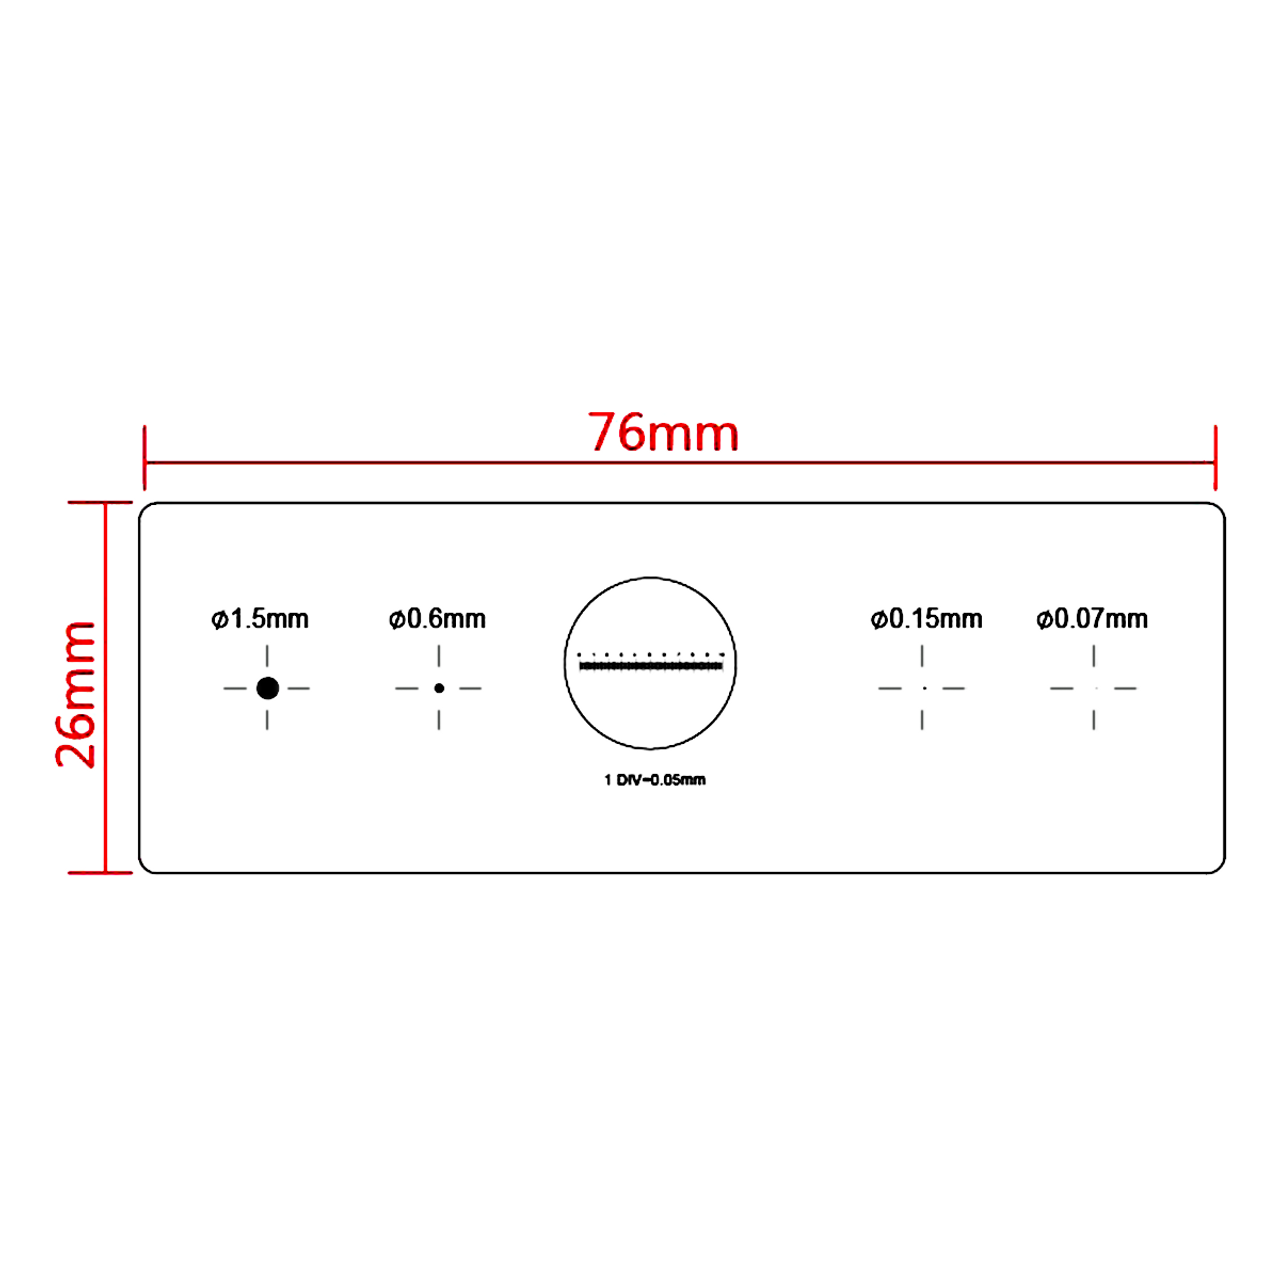 TCM-H Microscope Stage Micrometer Calibration Slide with 4-Scales and 0.01mm Line Resolution